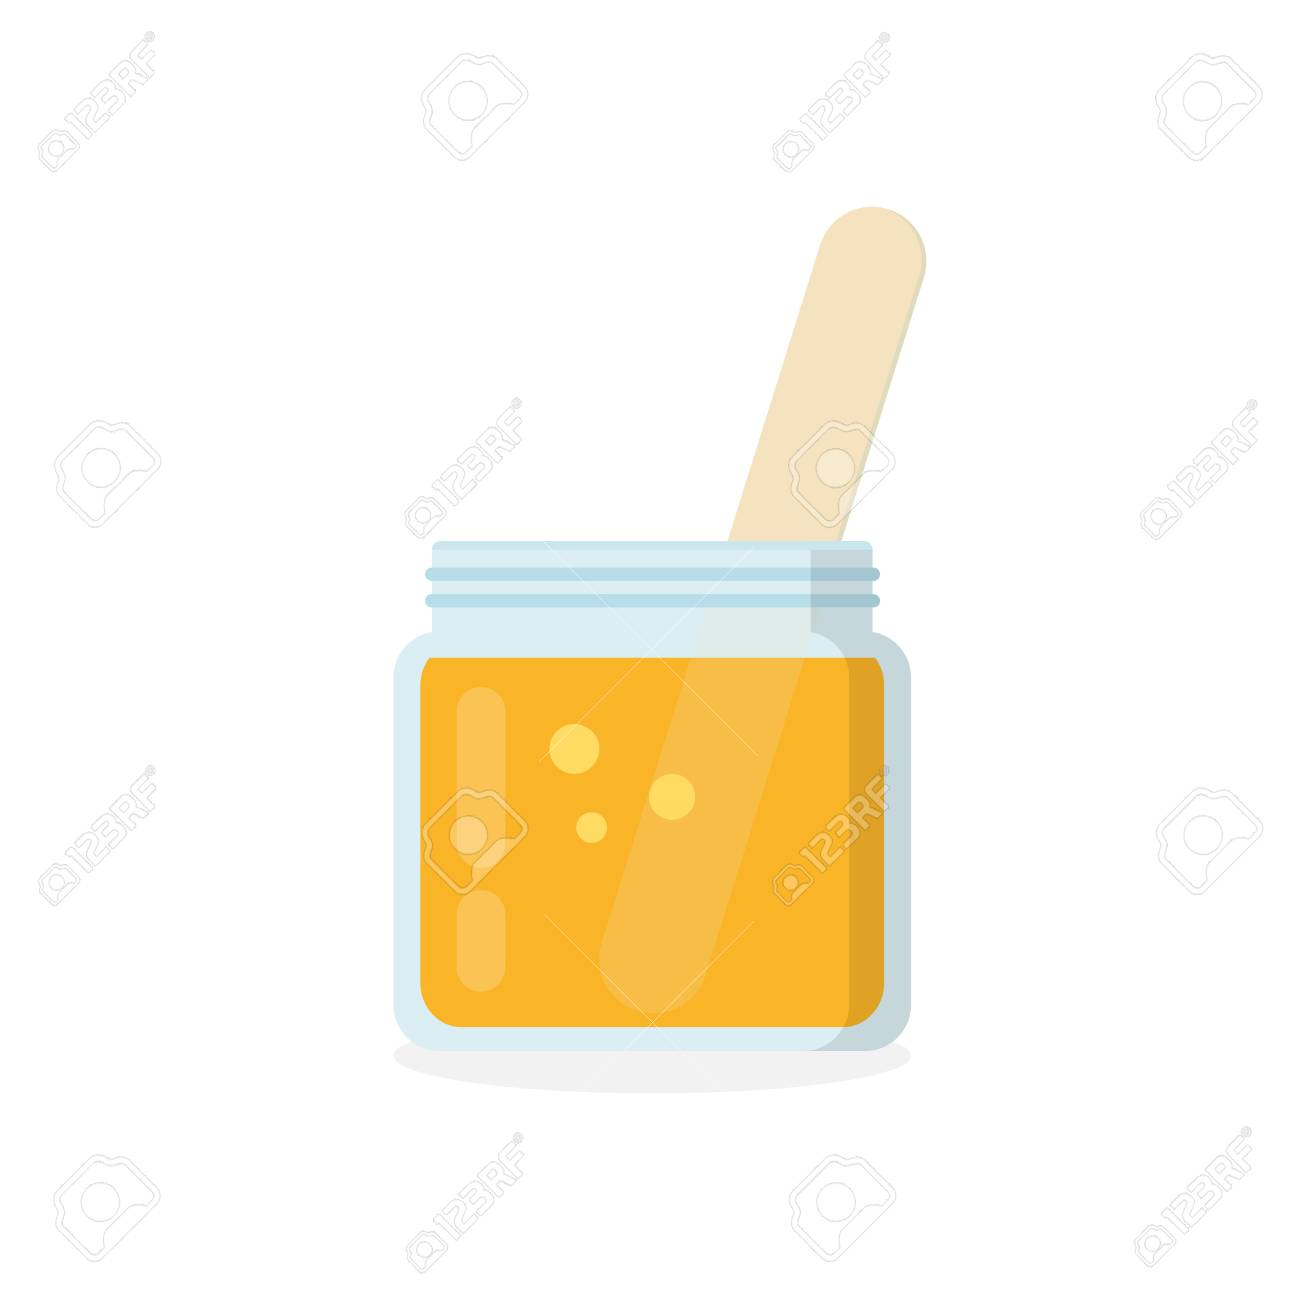 Glass Jar Of Wax With Stick Isolated On White Background Tools Royalty Free Cliparts Vectors And Stock Illustration Image 96829300